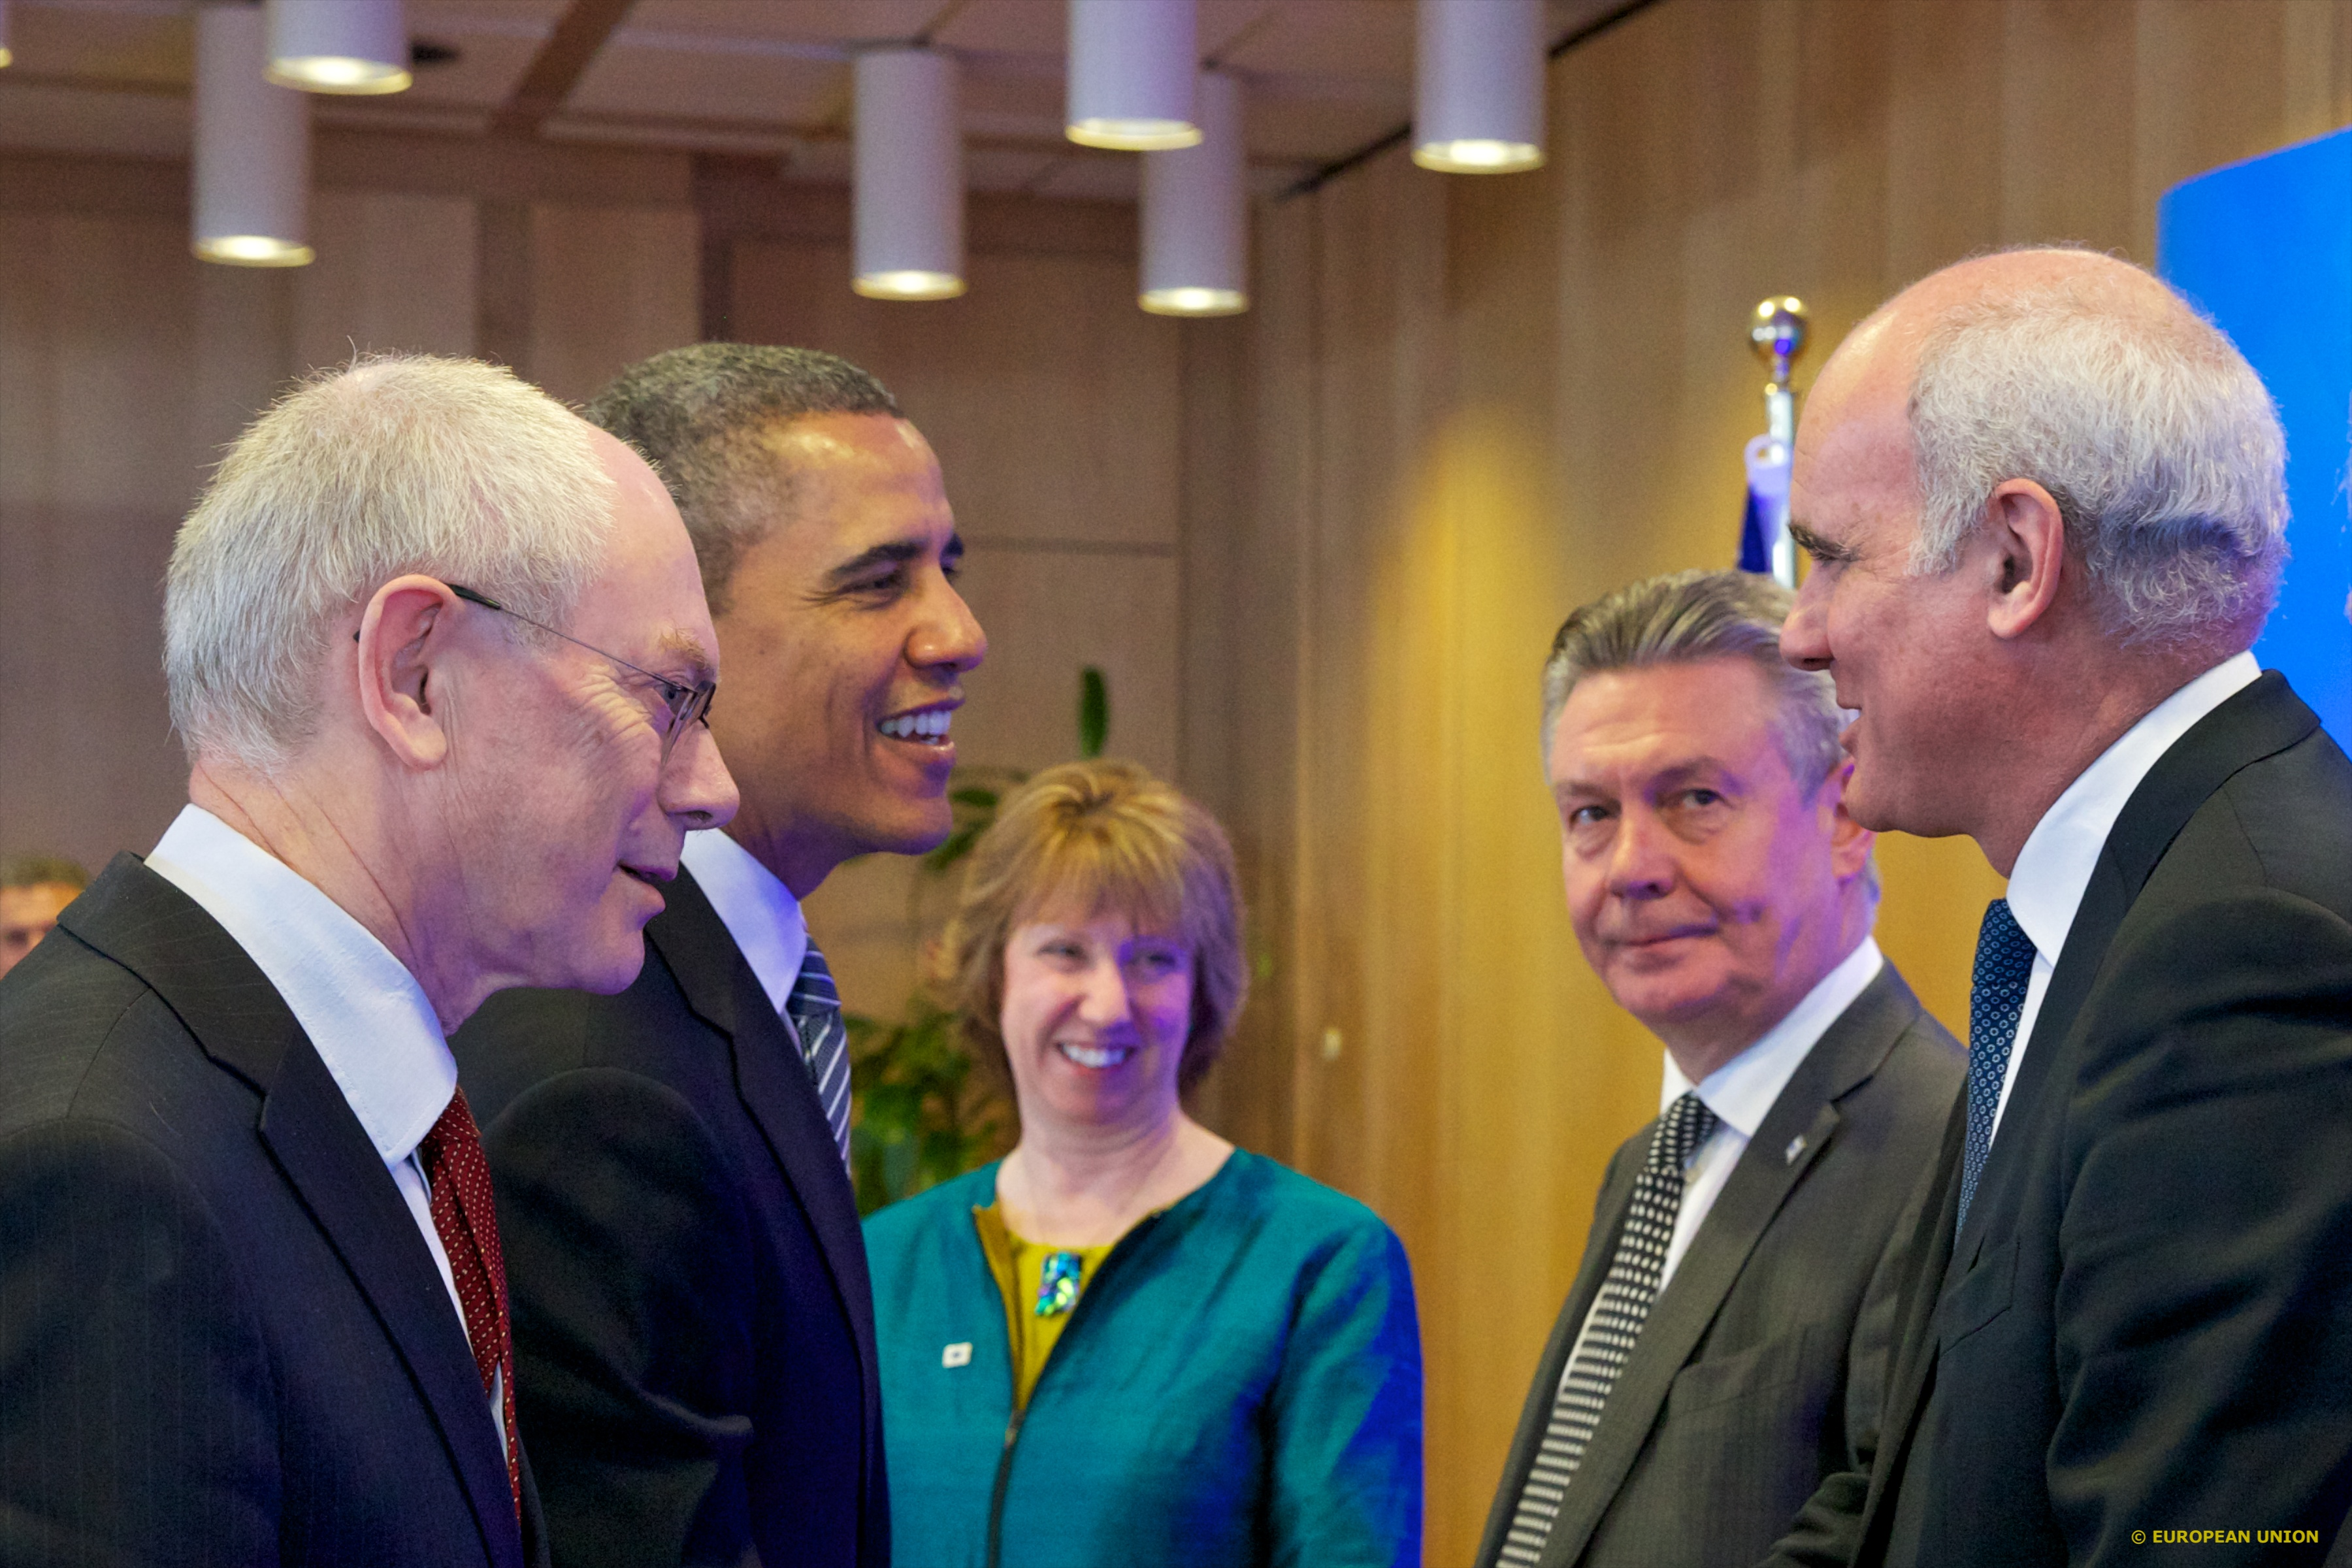 Left to right: President of the European Council Herman van Rompuy, President of the United States of American Barack Obama, EU High Representative Catherine Ashton, EU Trade Commissioner Karel de Gucht. Brussels 2014 [The Council of the European Union]